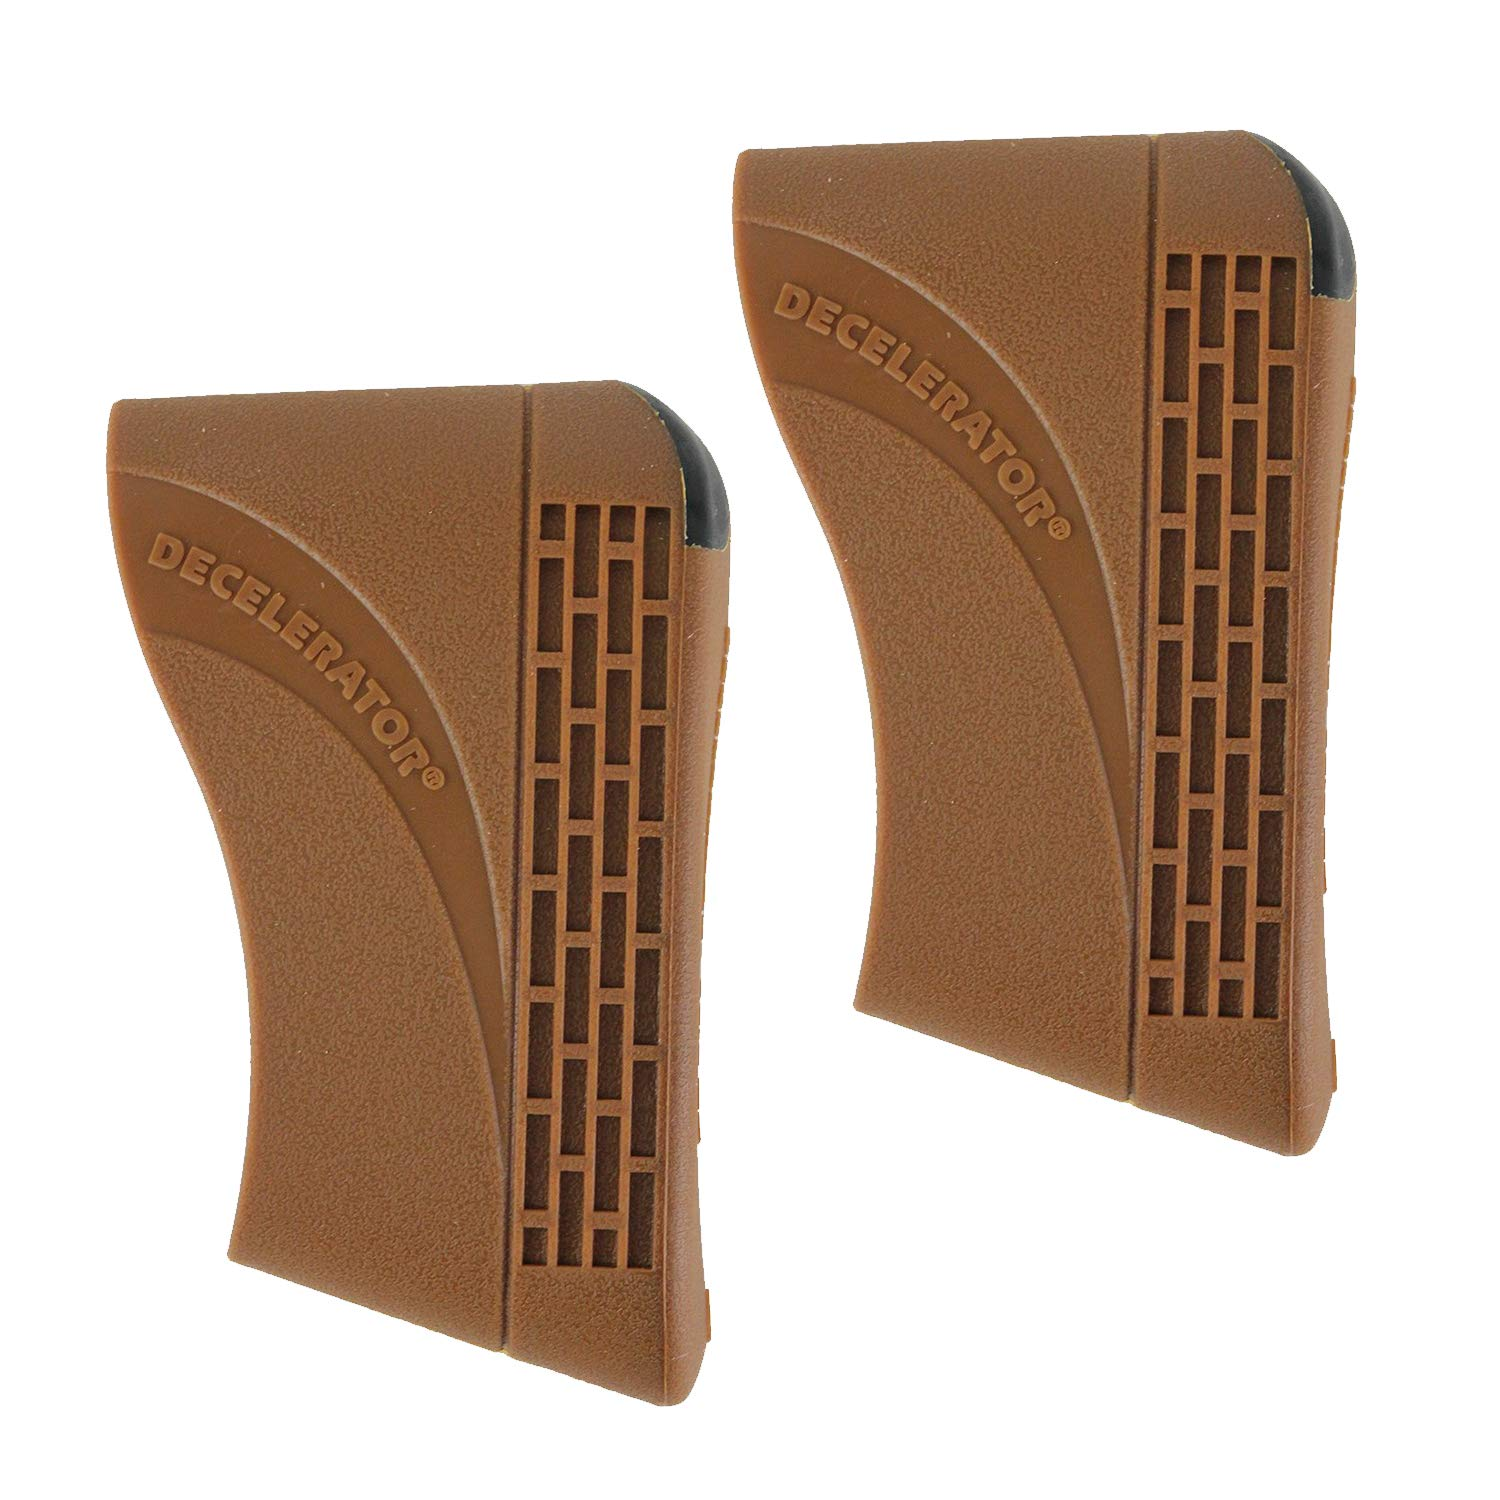 Pachmayr Decelerator Slip On Recoil Pad (2 Pack)